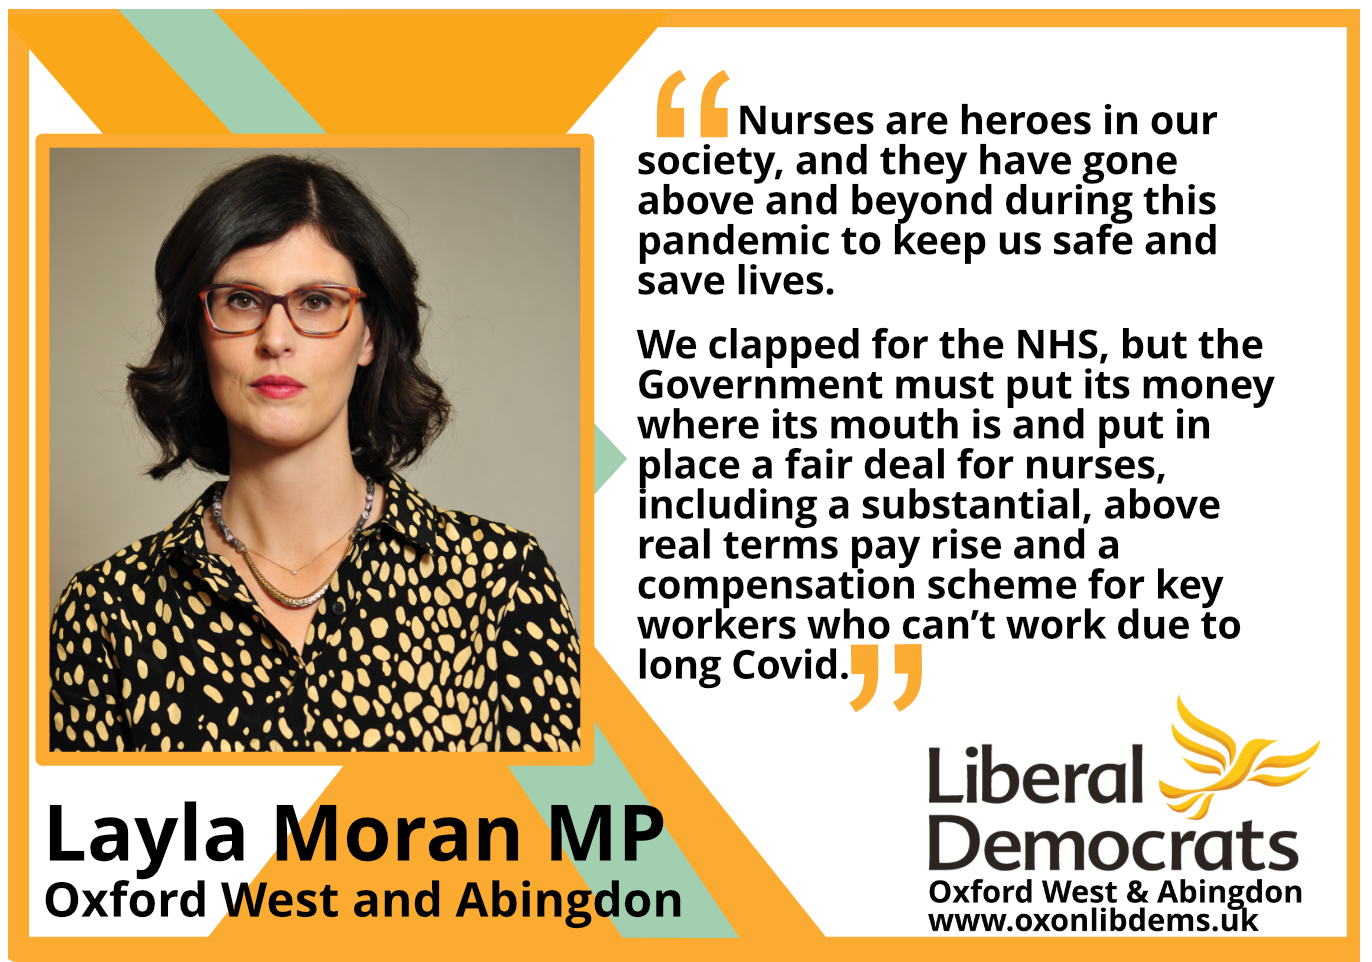 Nurses are heroes in our society, and they have gone above and beyond during this pandemic to keep us safe and save lives.